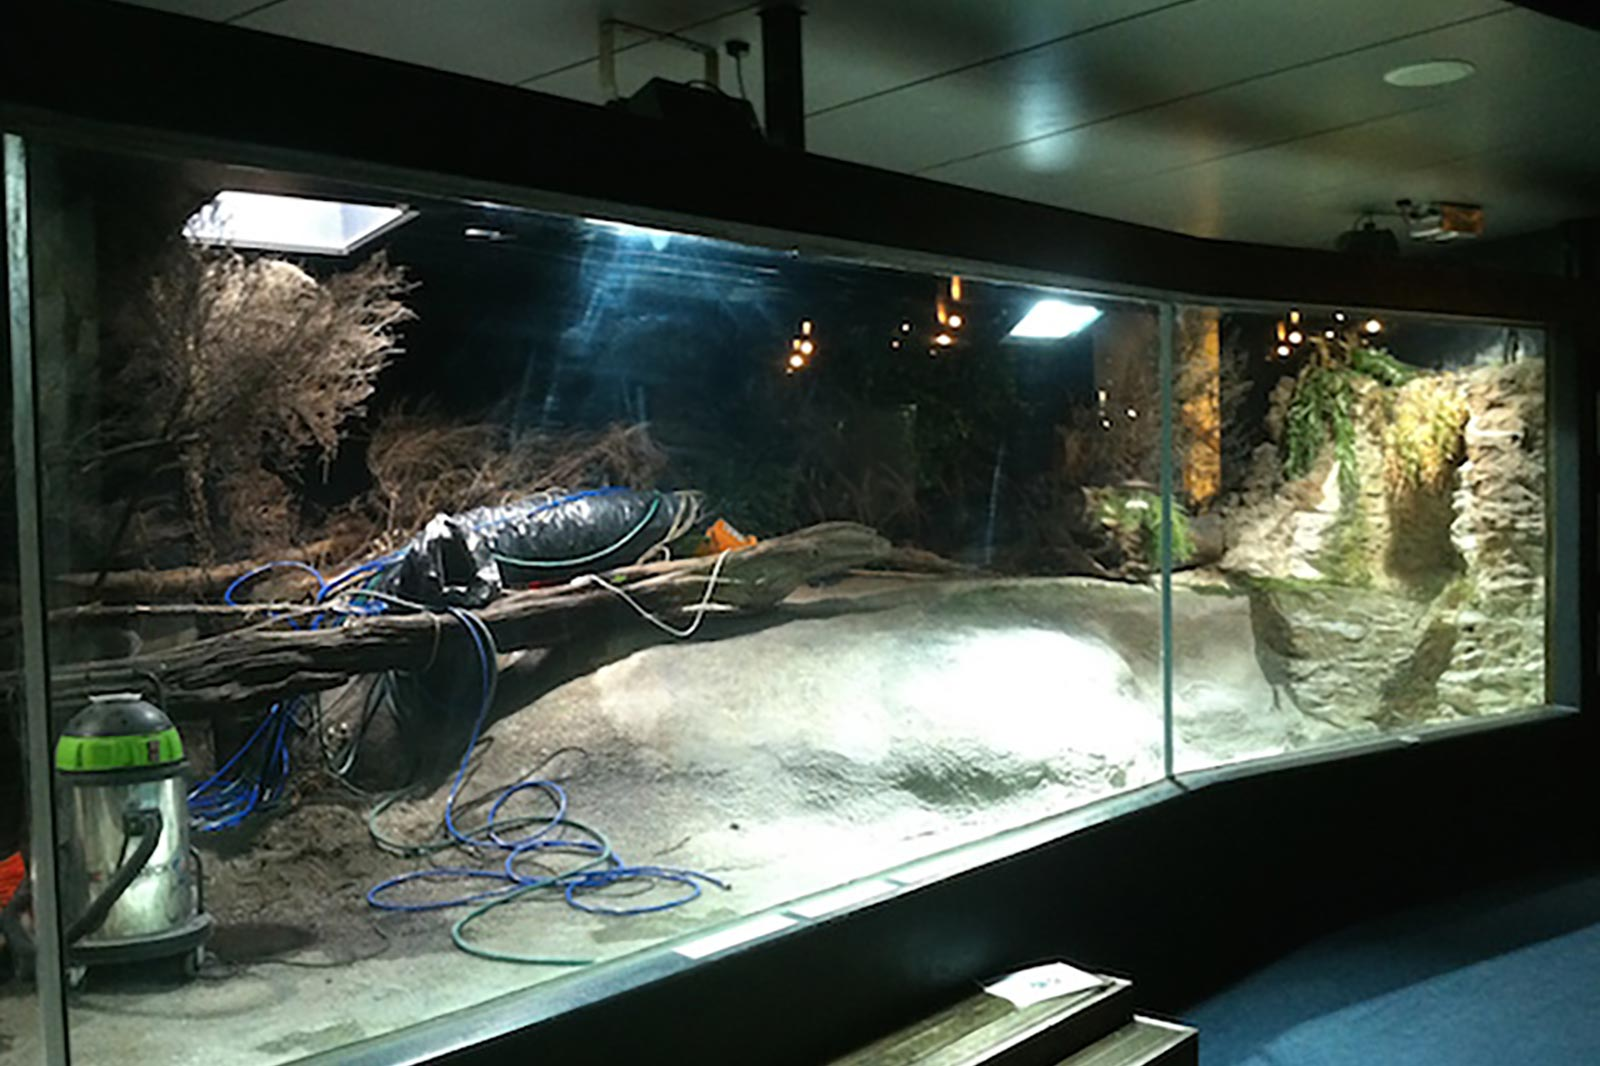 Aquarium Maintenance Service provided by Classique Plastics